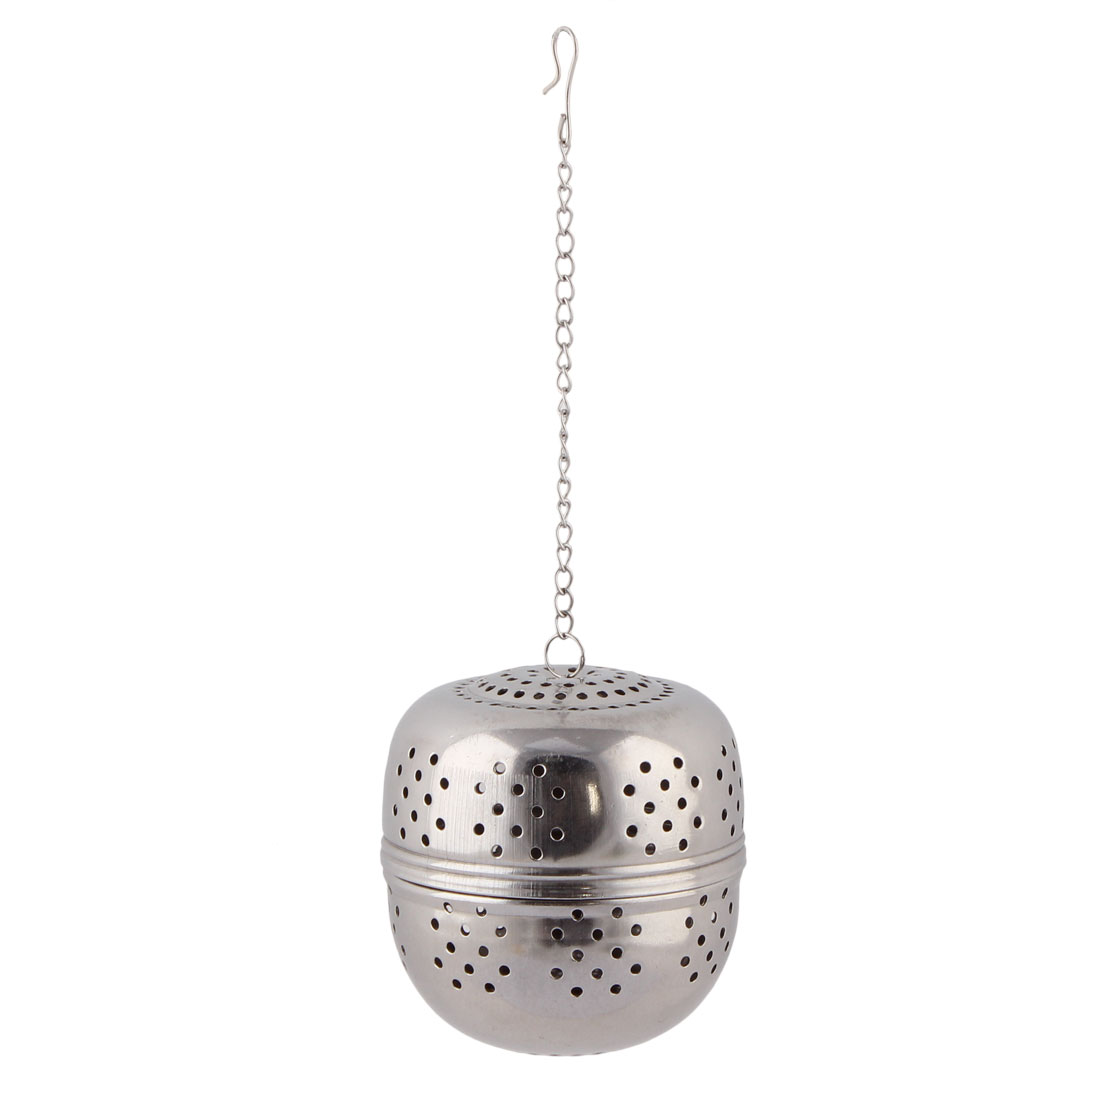 Household Stainless Steel Loose Leaf Tea Spice Perfume Infuser Ball Strainer 6.5cm Dia